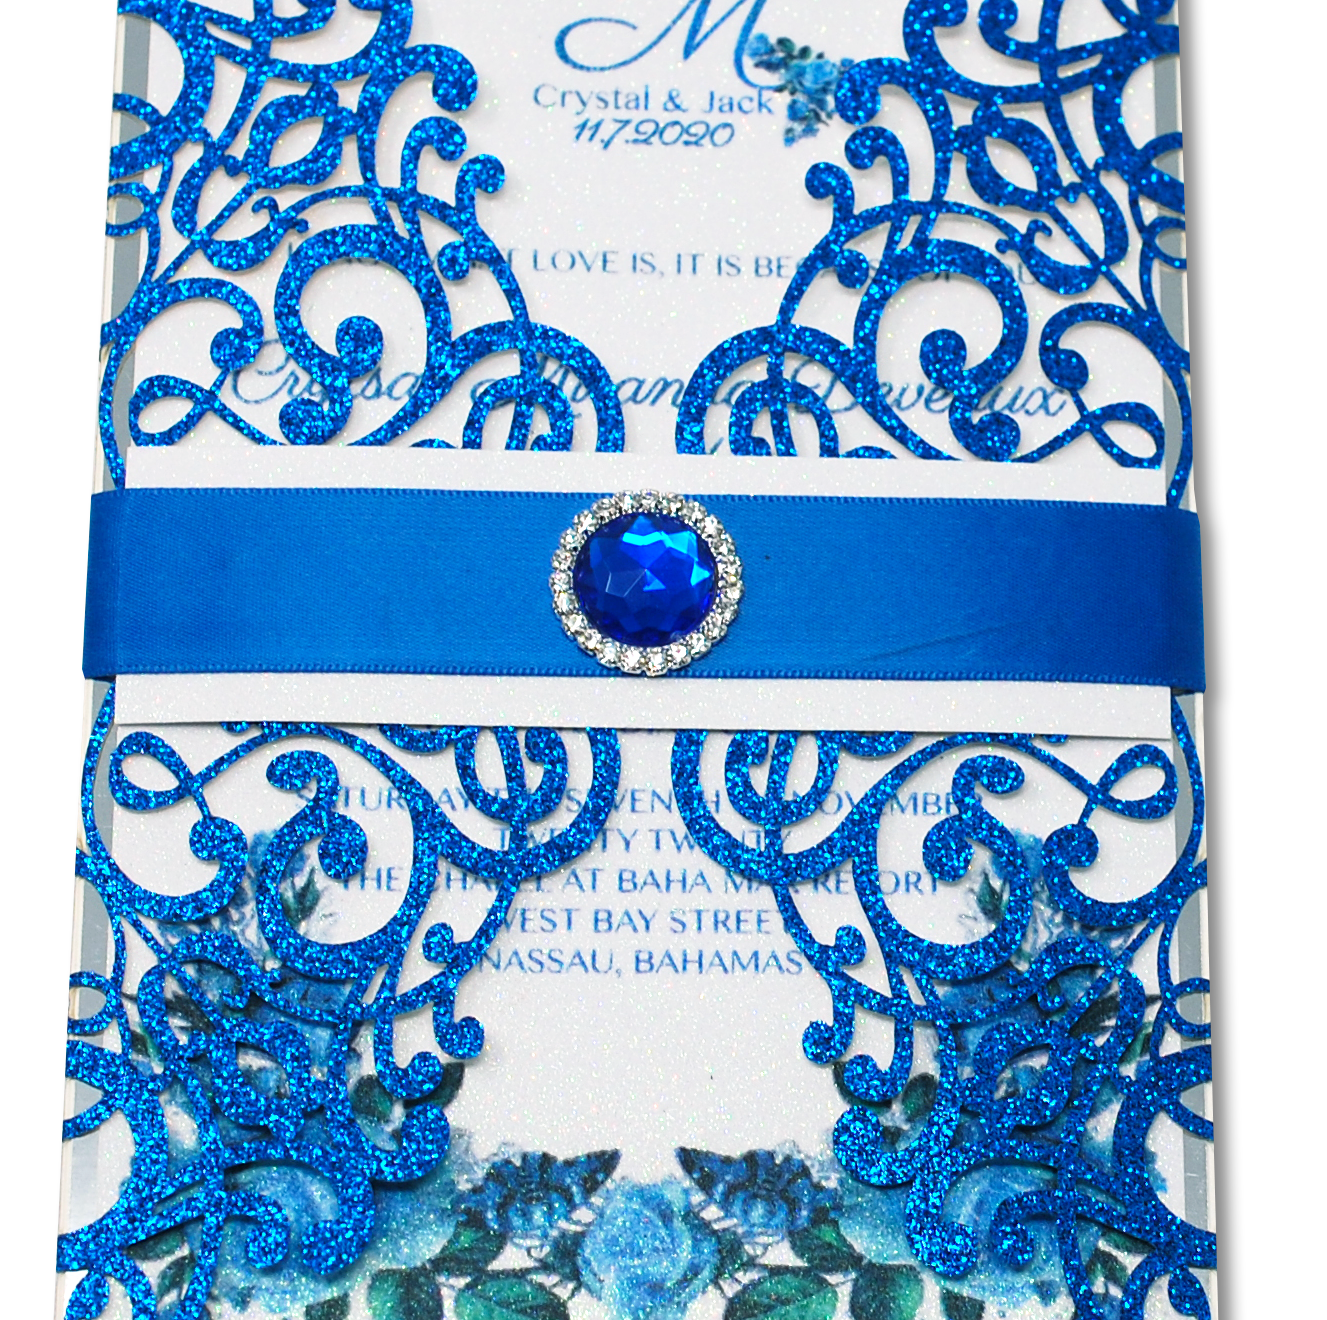 Blue Lasercut Invitation. Click the link to see more of our lasercut envelopes.